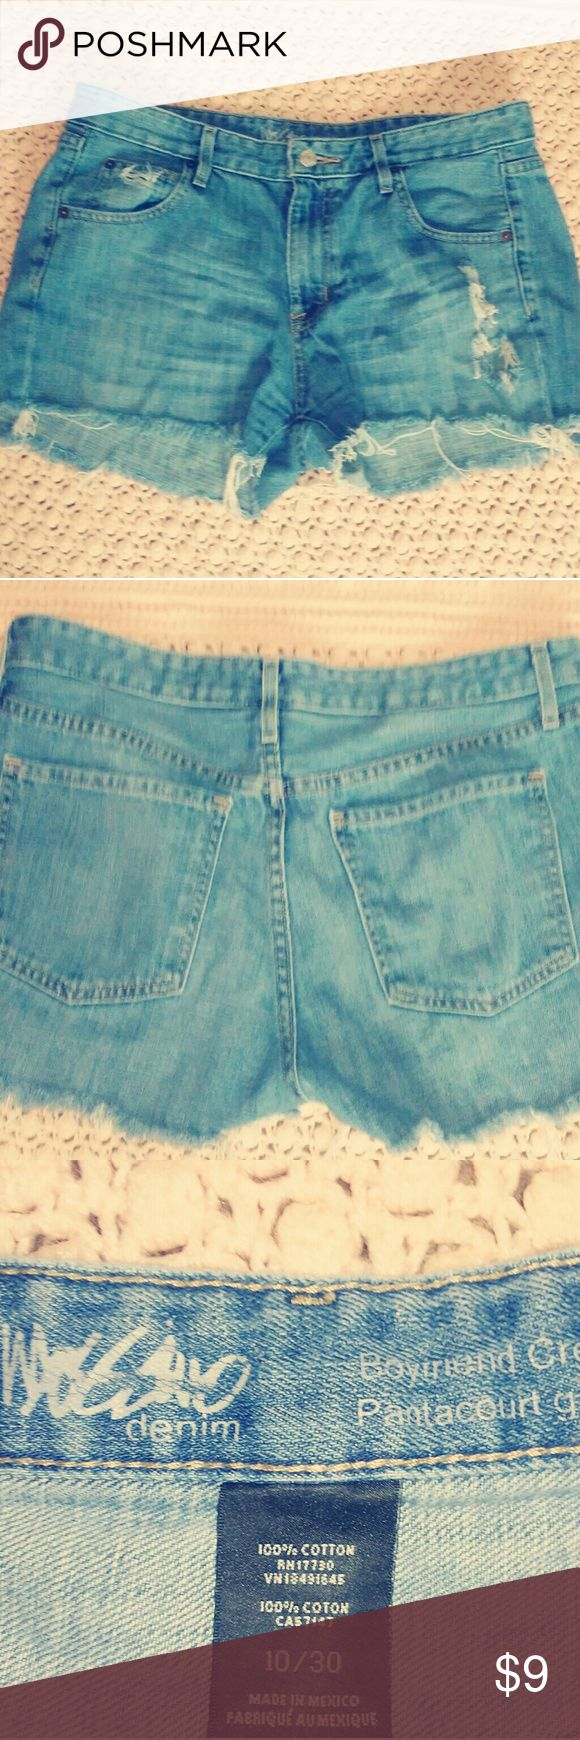 × Destroyed Denim Cut Off Shorts × Mossimo Destroyed Denim Cut-Off Shorts in a beautiful light wash... Perfect for the upcoming summer months. Super hot with a crop top or just a cute tee. These are not low rise. I'd say mid to high rise depending on how high you wear them..size 30 or 10.  Very cute small rip on front right leg and fraying from being cut offs of course. Super cute!!! Bundle to save a lot!!! $7 on M erc ari Mossimo Supply Co Shorts Jean Shorts